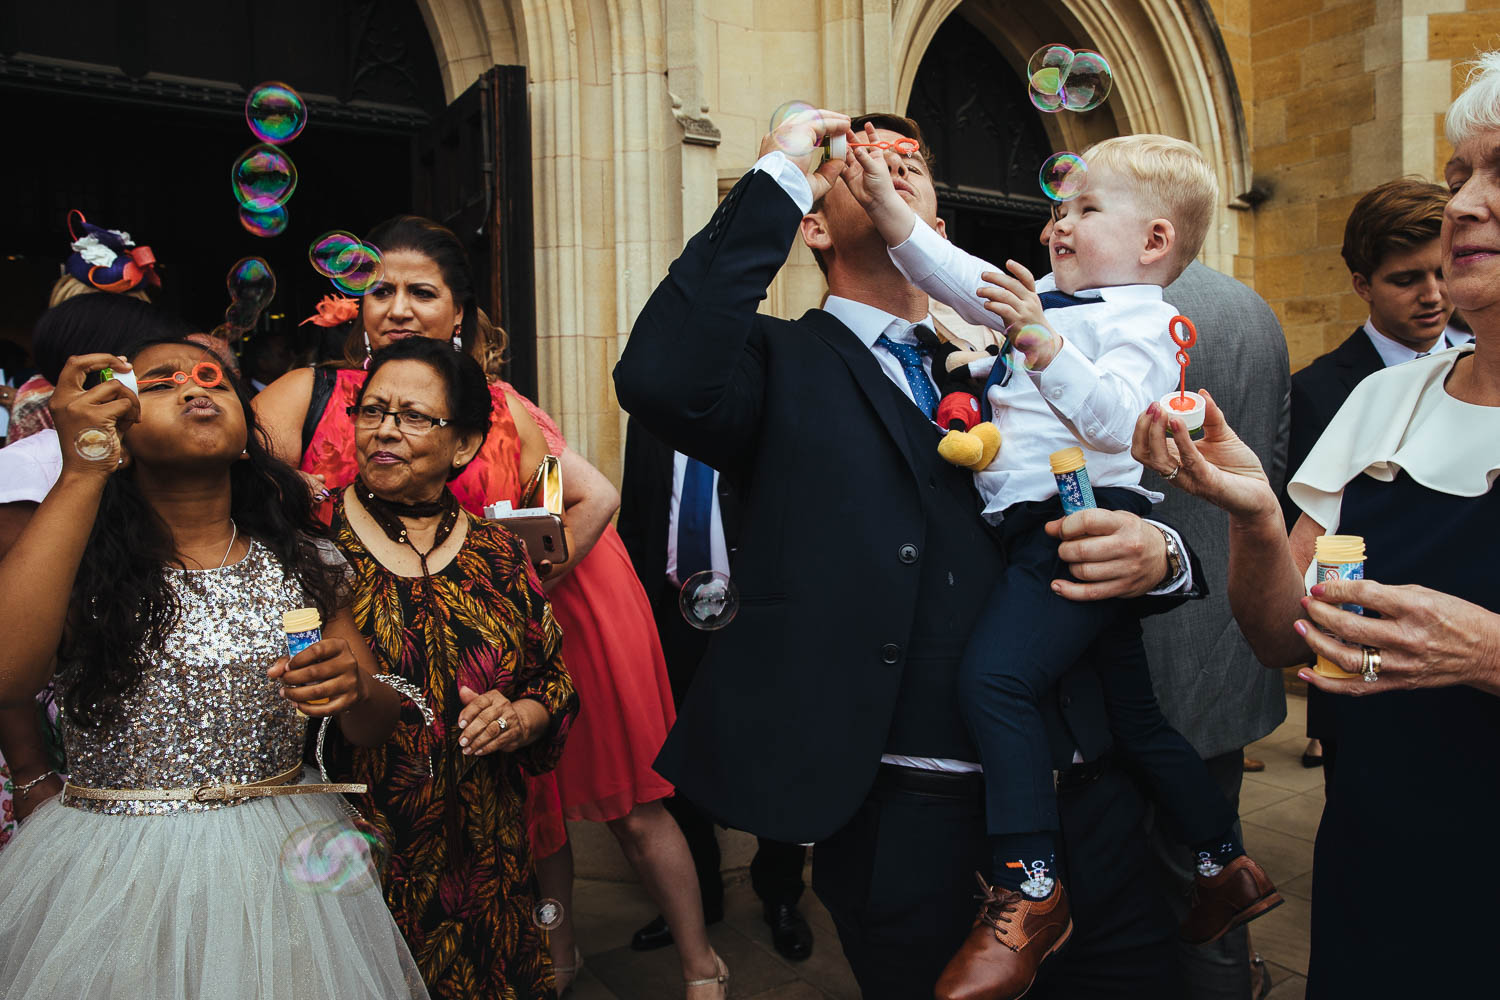 Ealing Abbey wedding